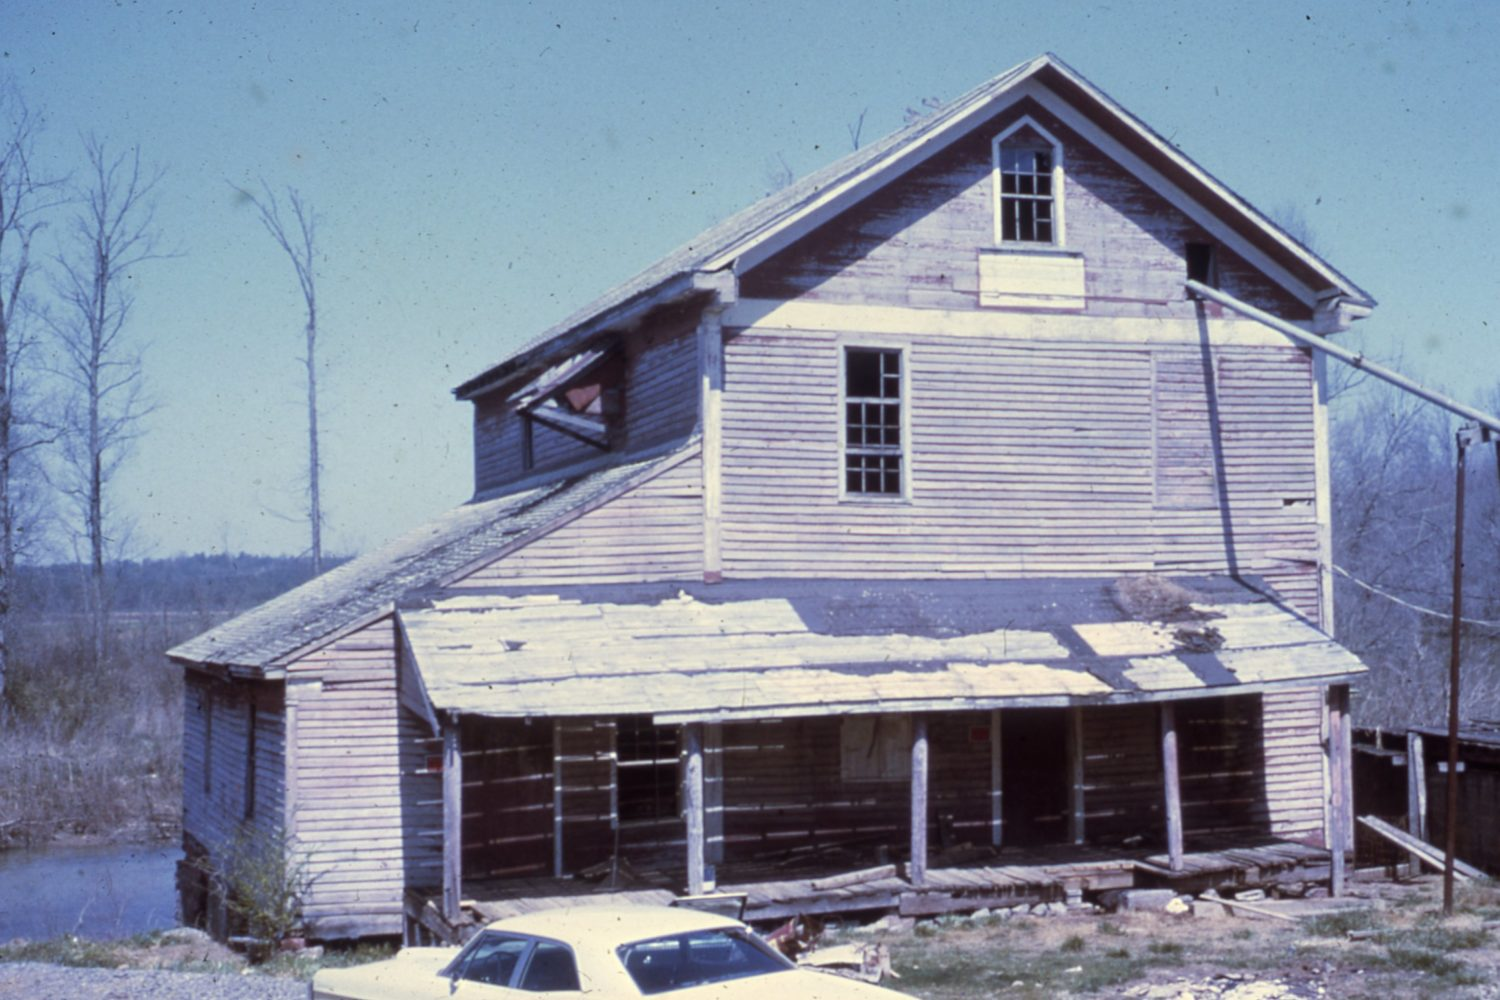 In 1971 Prater's Mill was in serious disrepair. To raise funds to preserve the mill, volunteers staged the first Prater's Mill Country Fair on Mother's Day weekend in May of 1971.